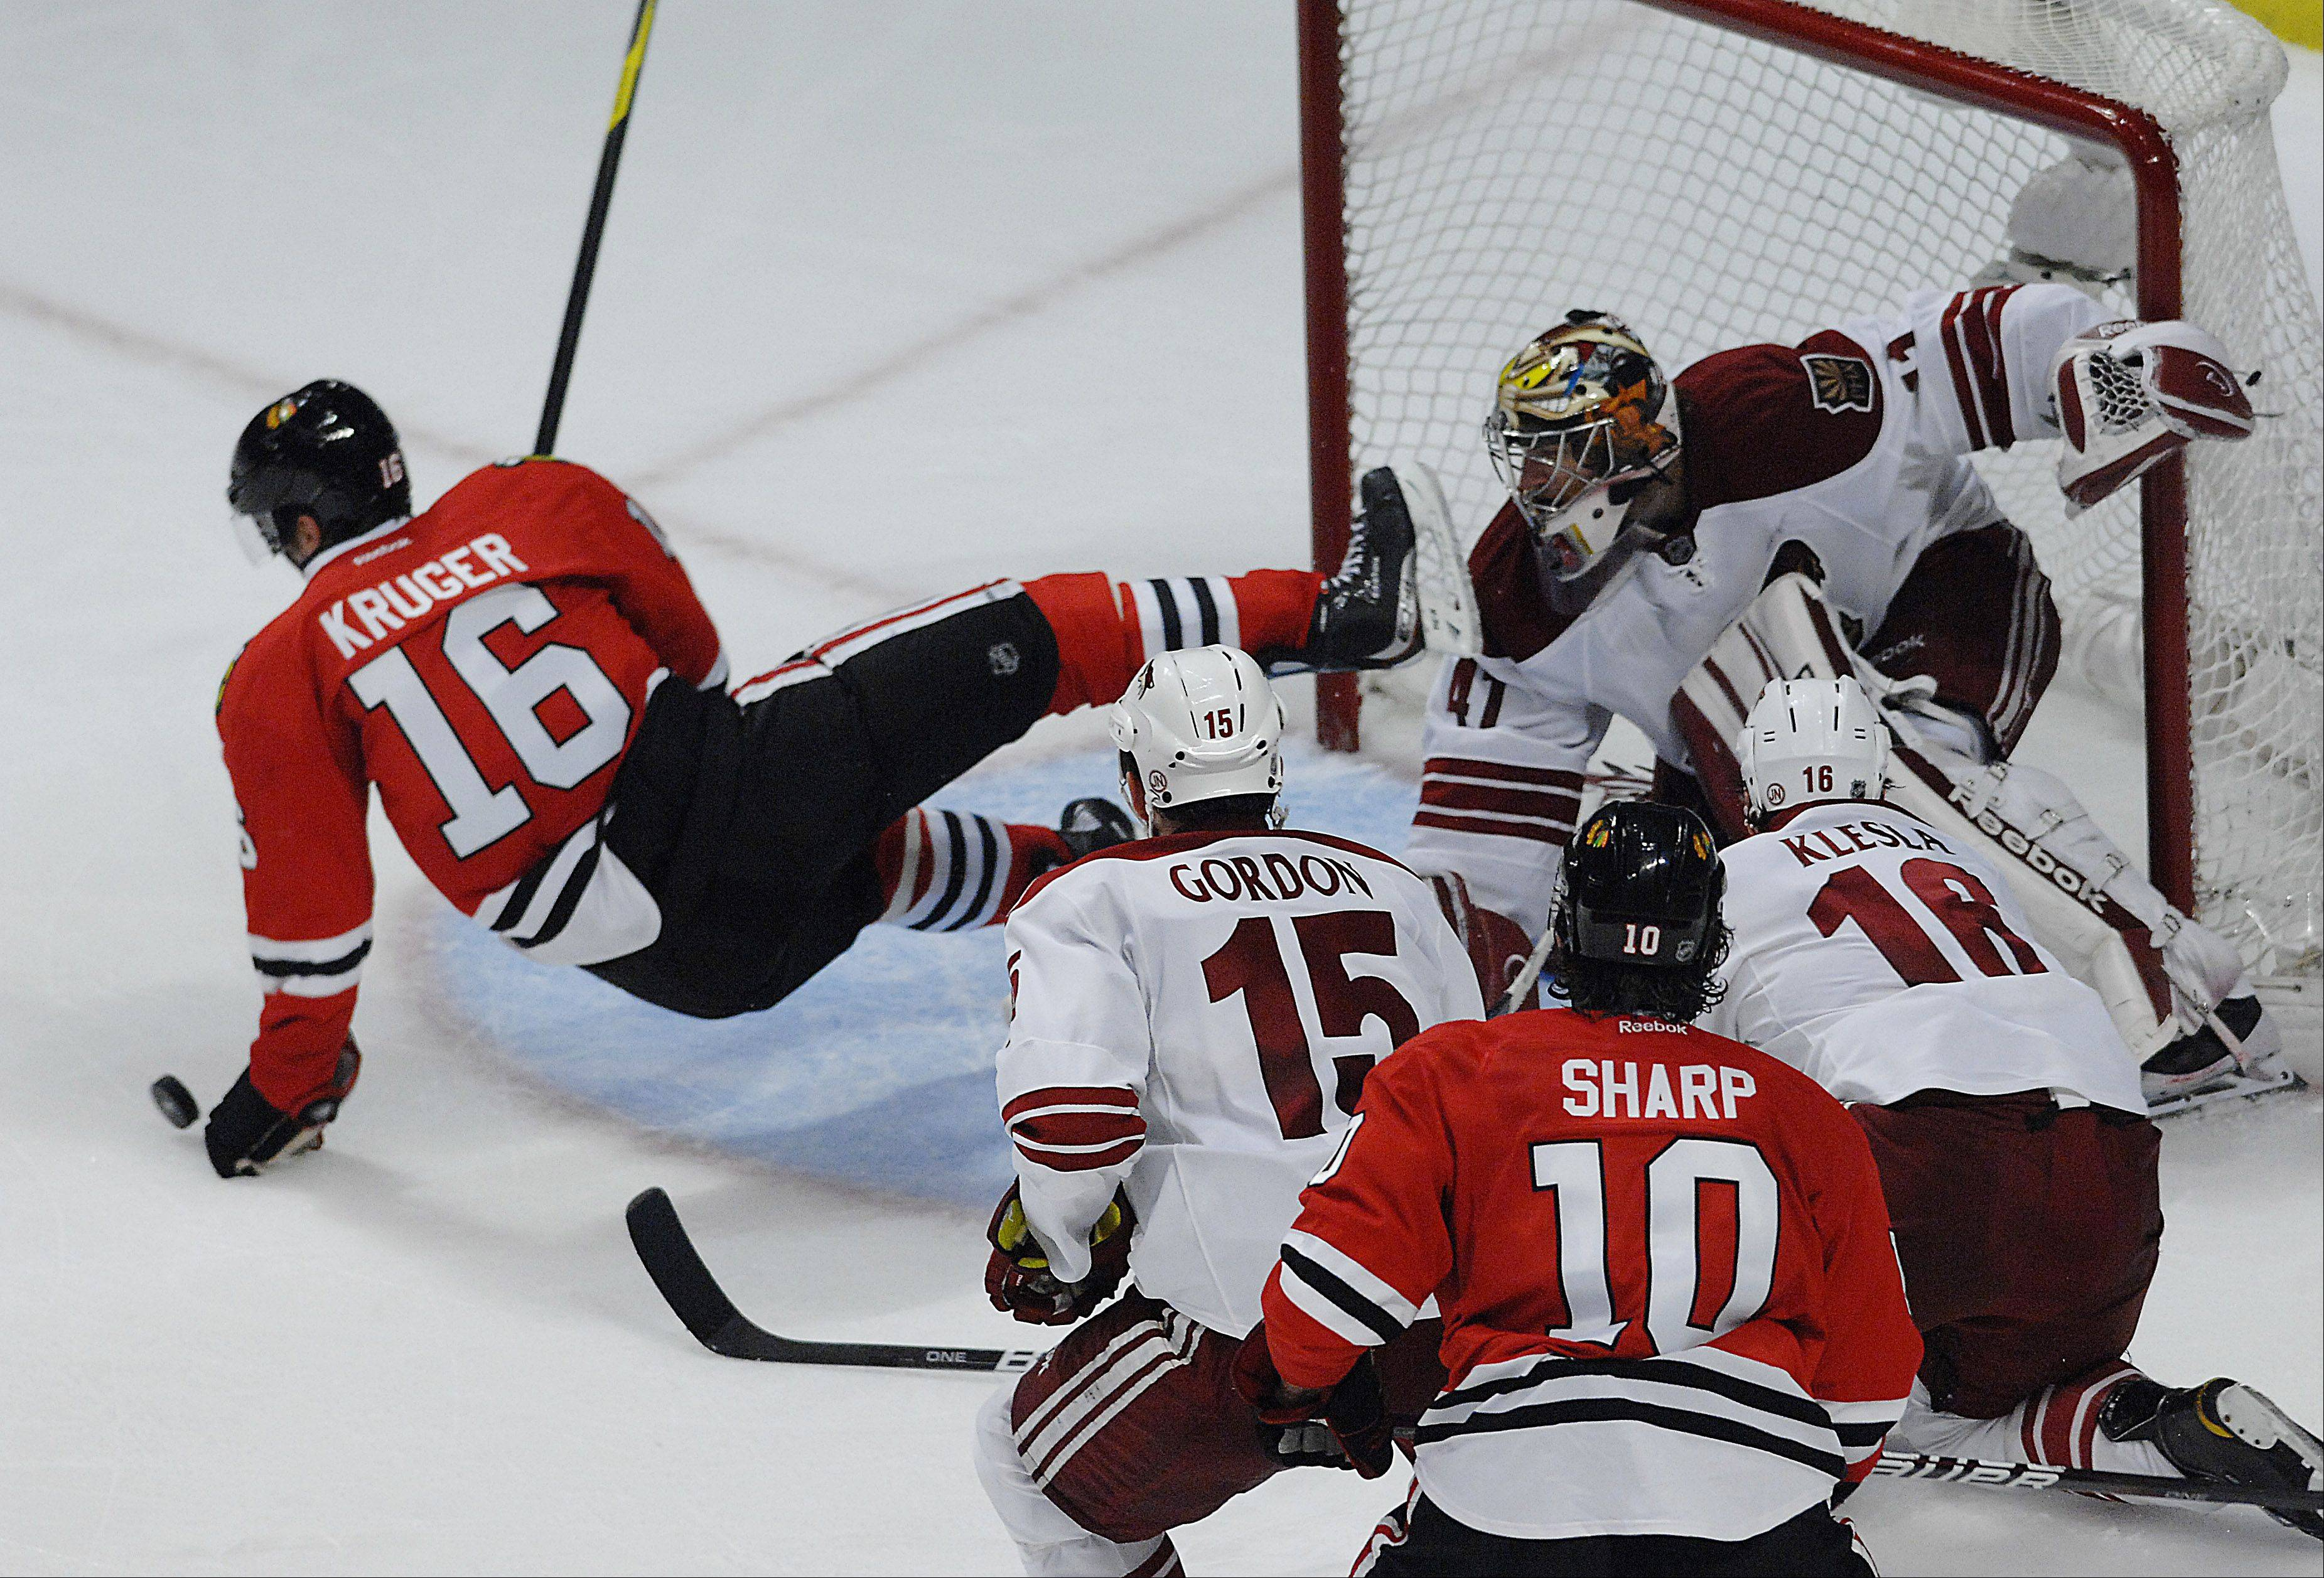 Chicago Blackhawks' center Marcus Kruger falls in front of the net.